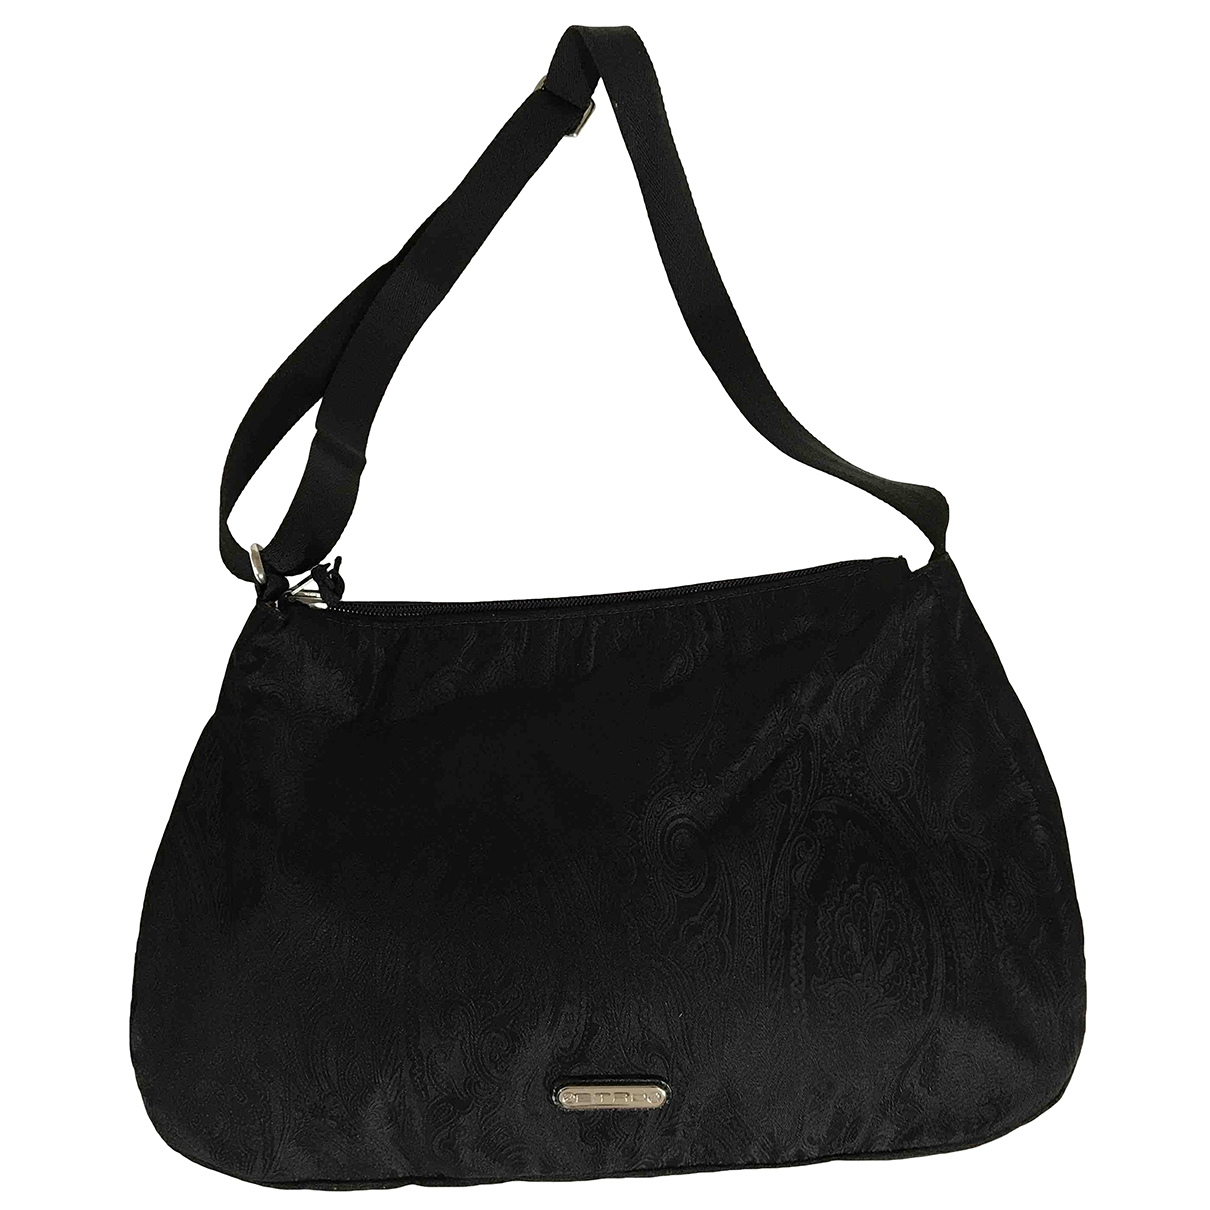 Etro \N Black Cloth handbag for Women \N